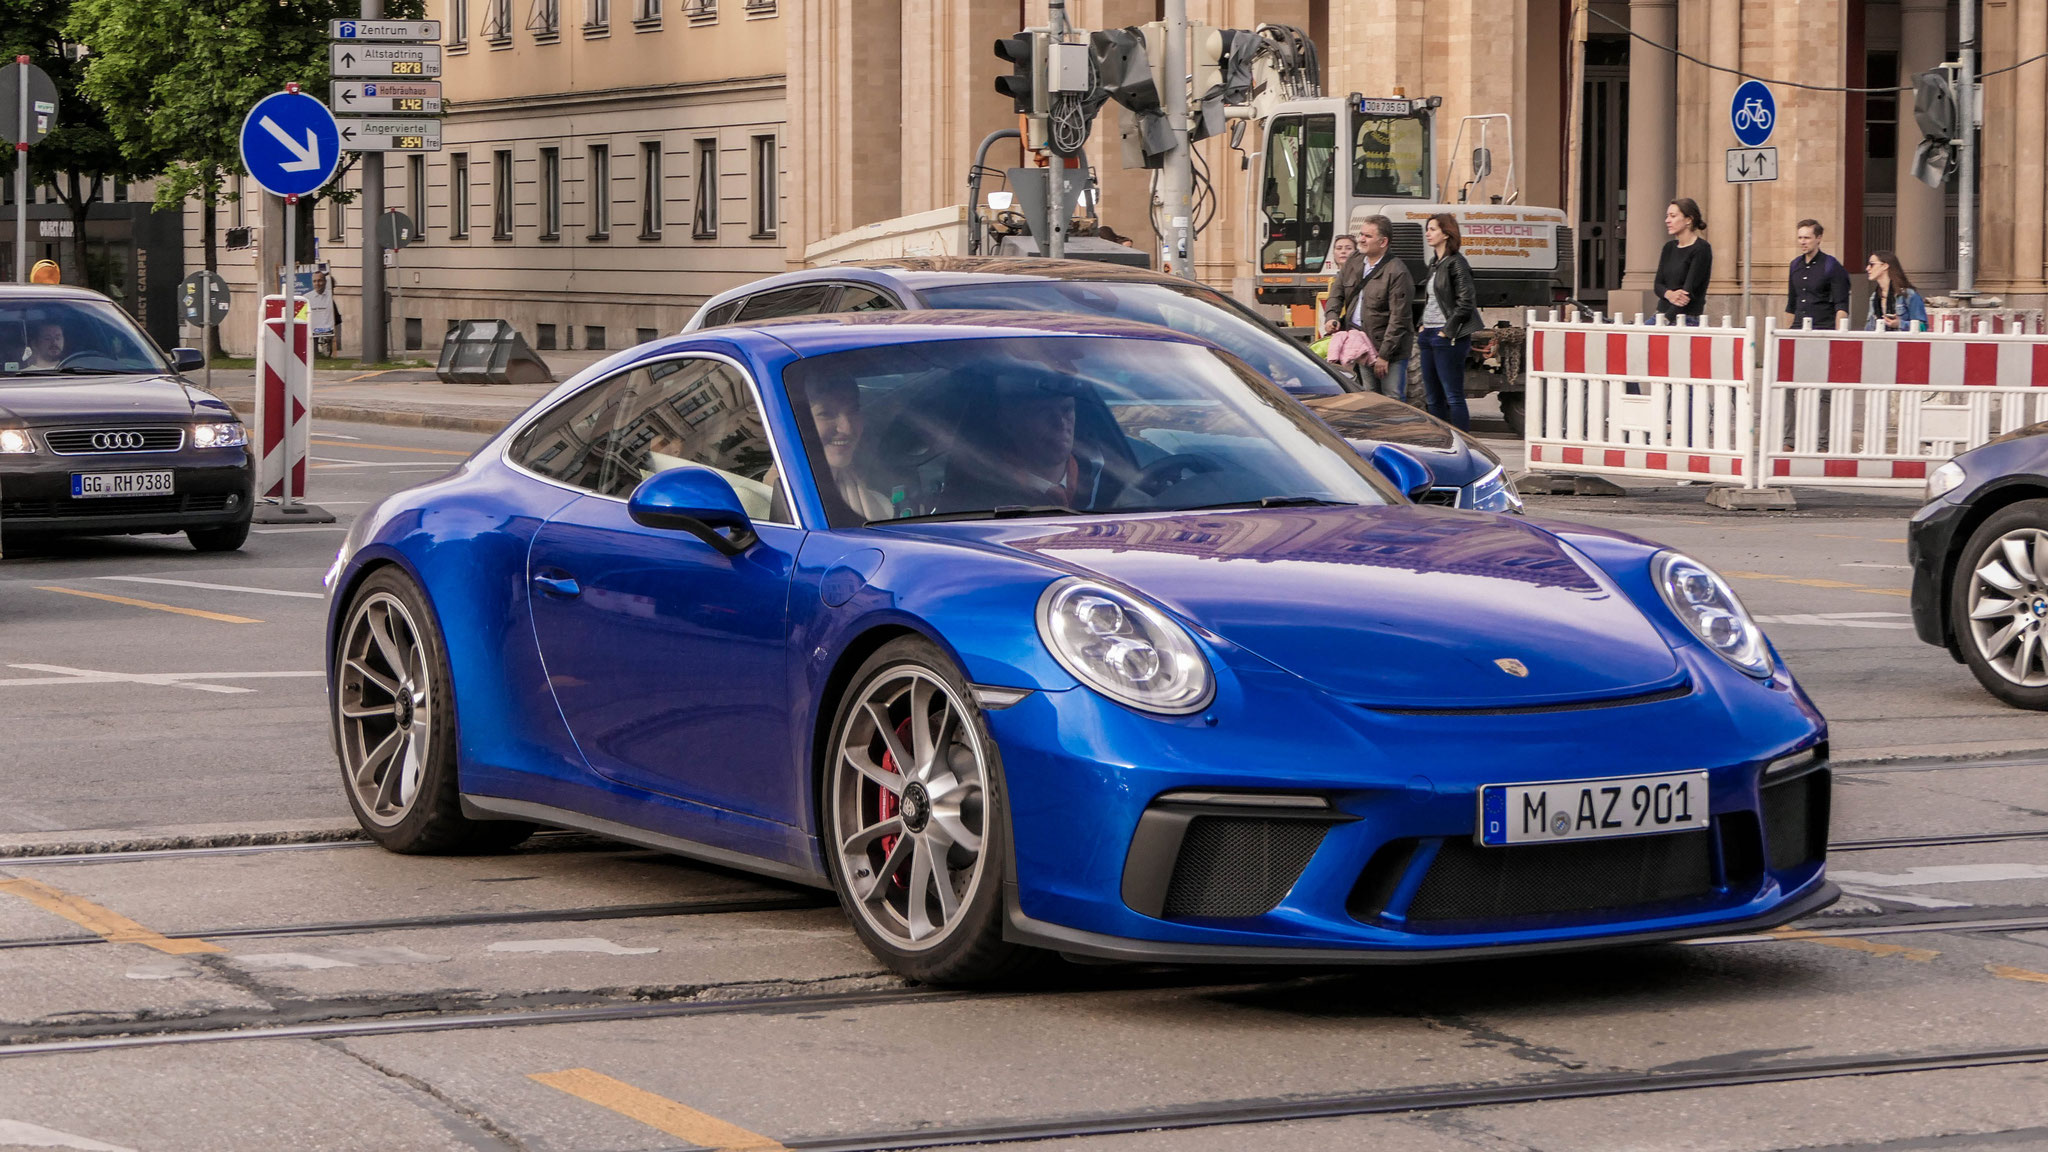 Porsche 991 GT3 Touring Package - M-AZ-901